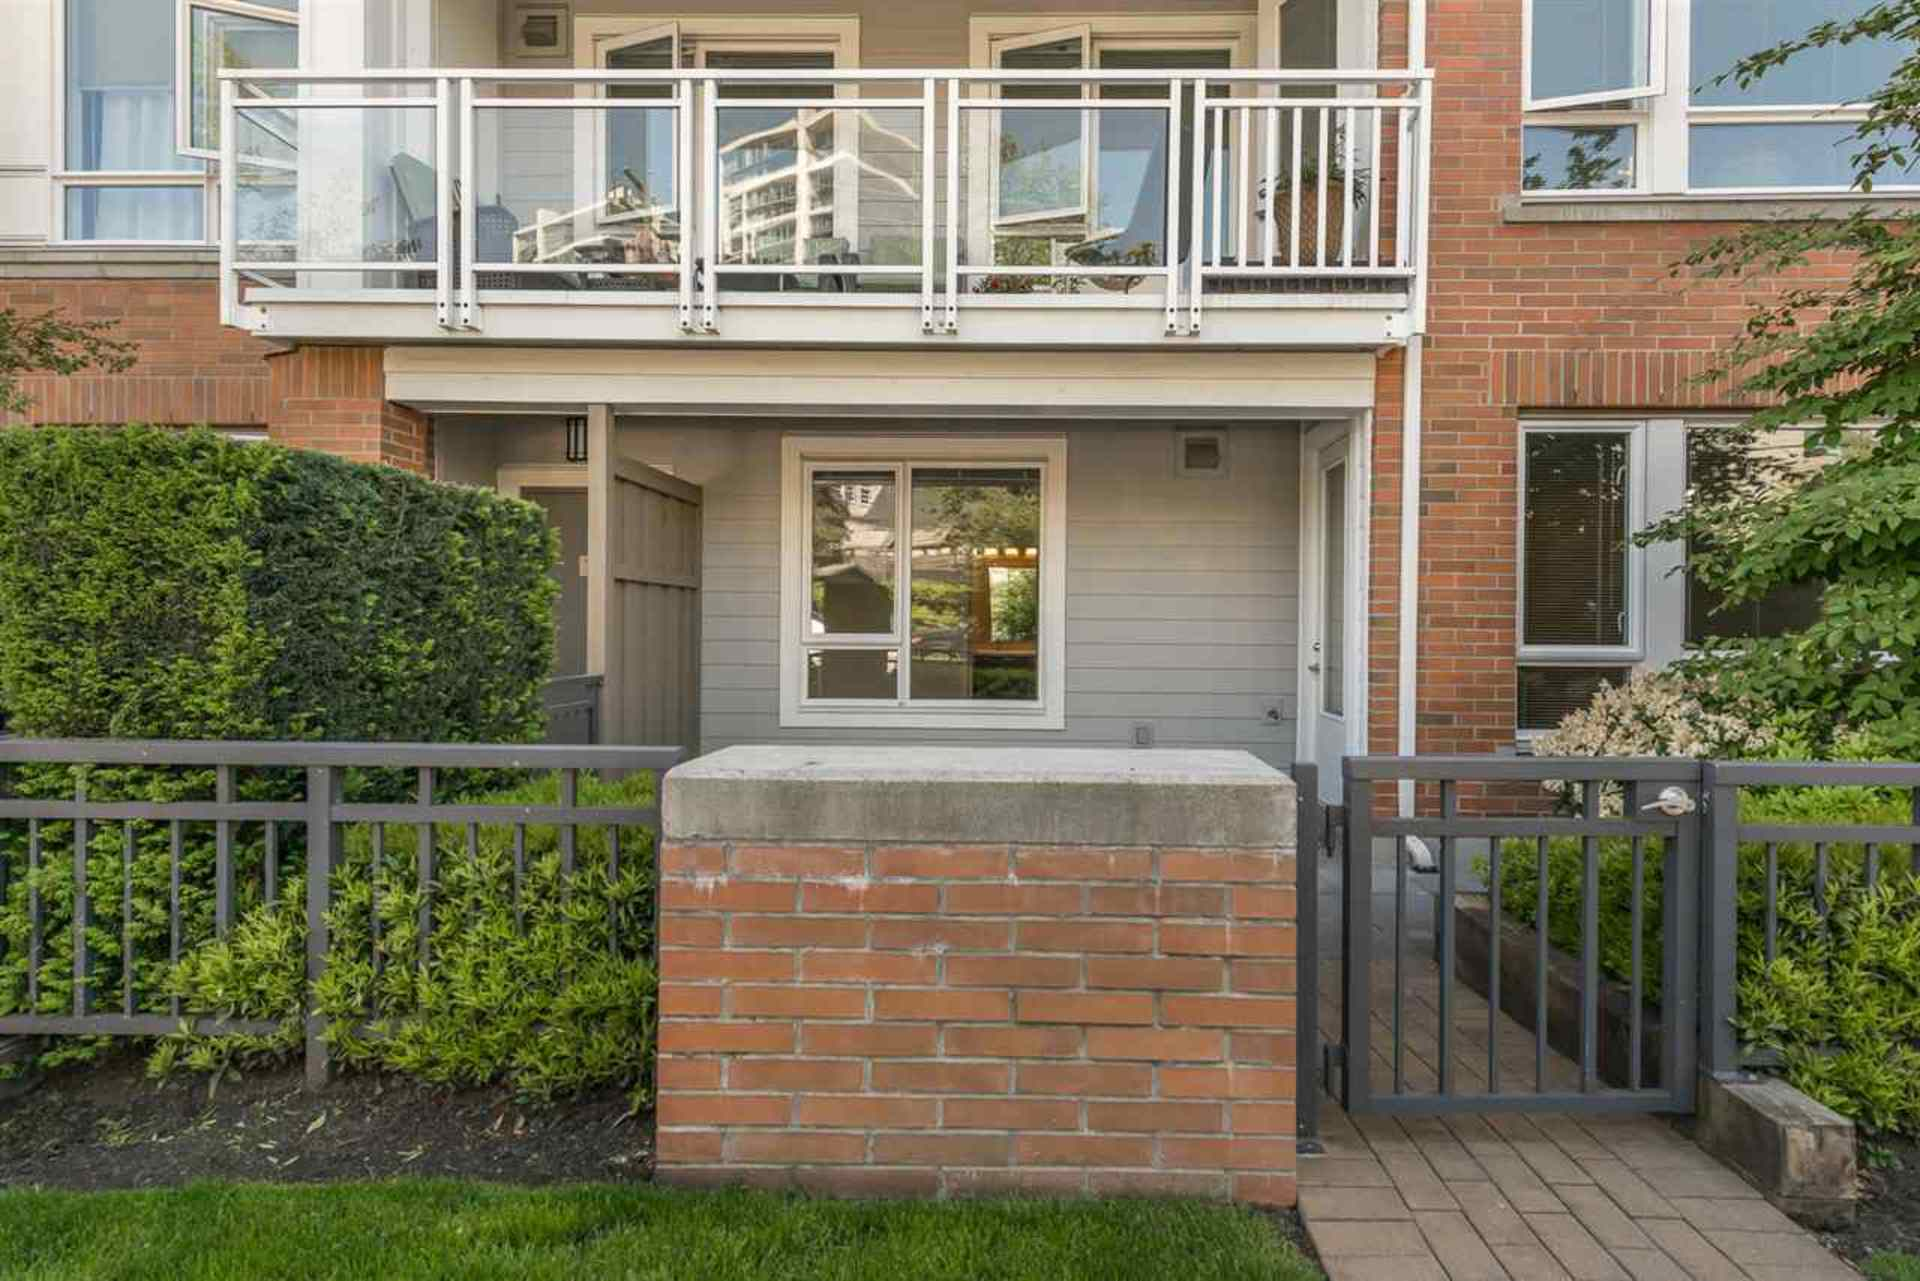 217-w-8th-street-central-lonsdale-north-vancouver-17 at 106 - 217 W 8th Street, Central Lonsdale, North Vancouver